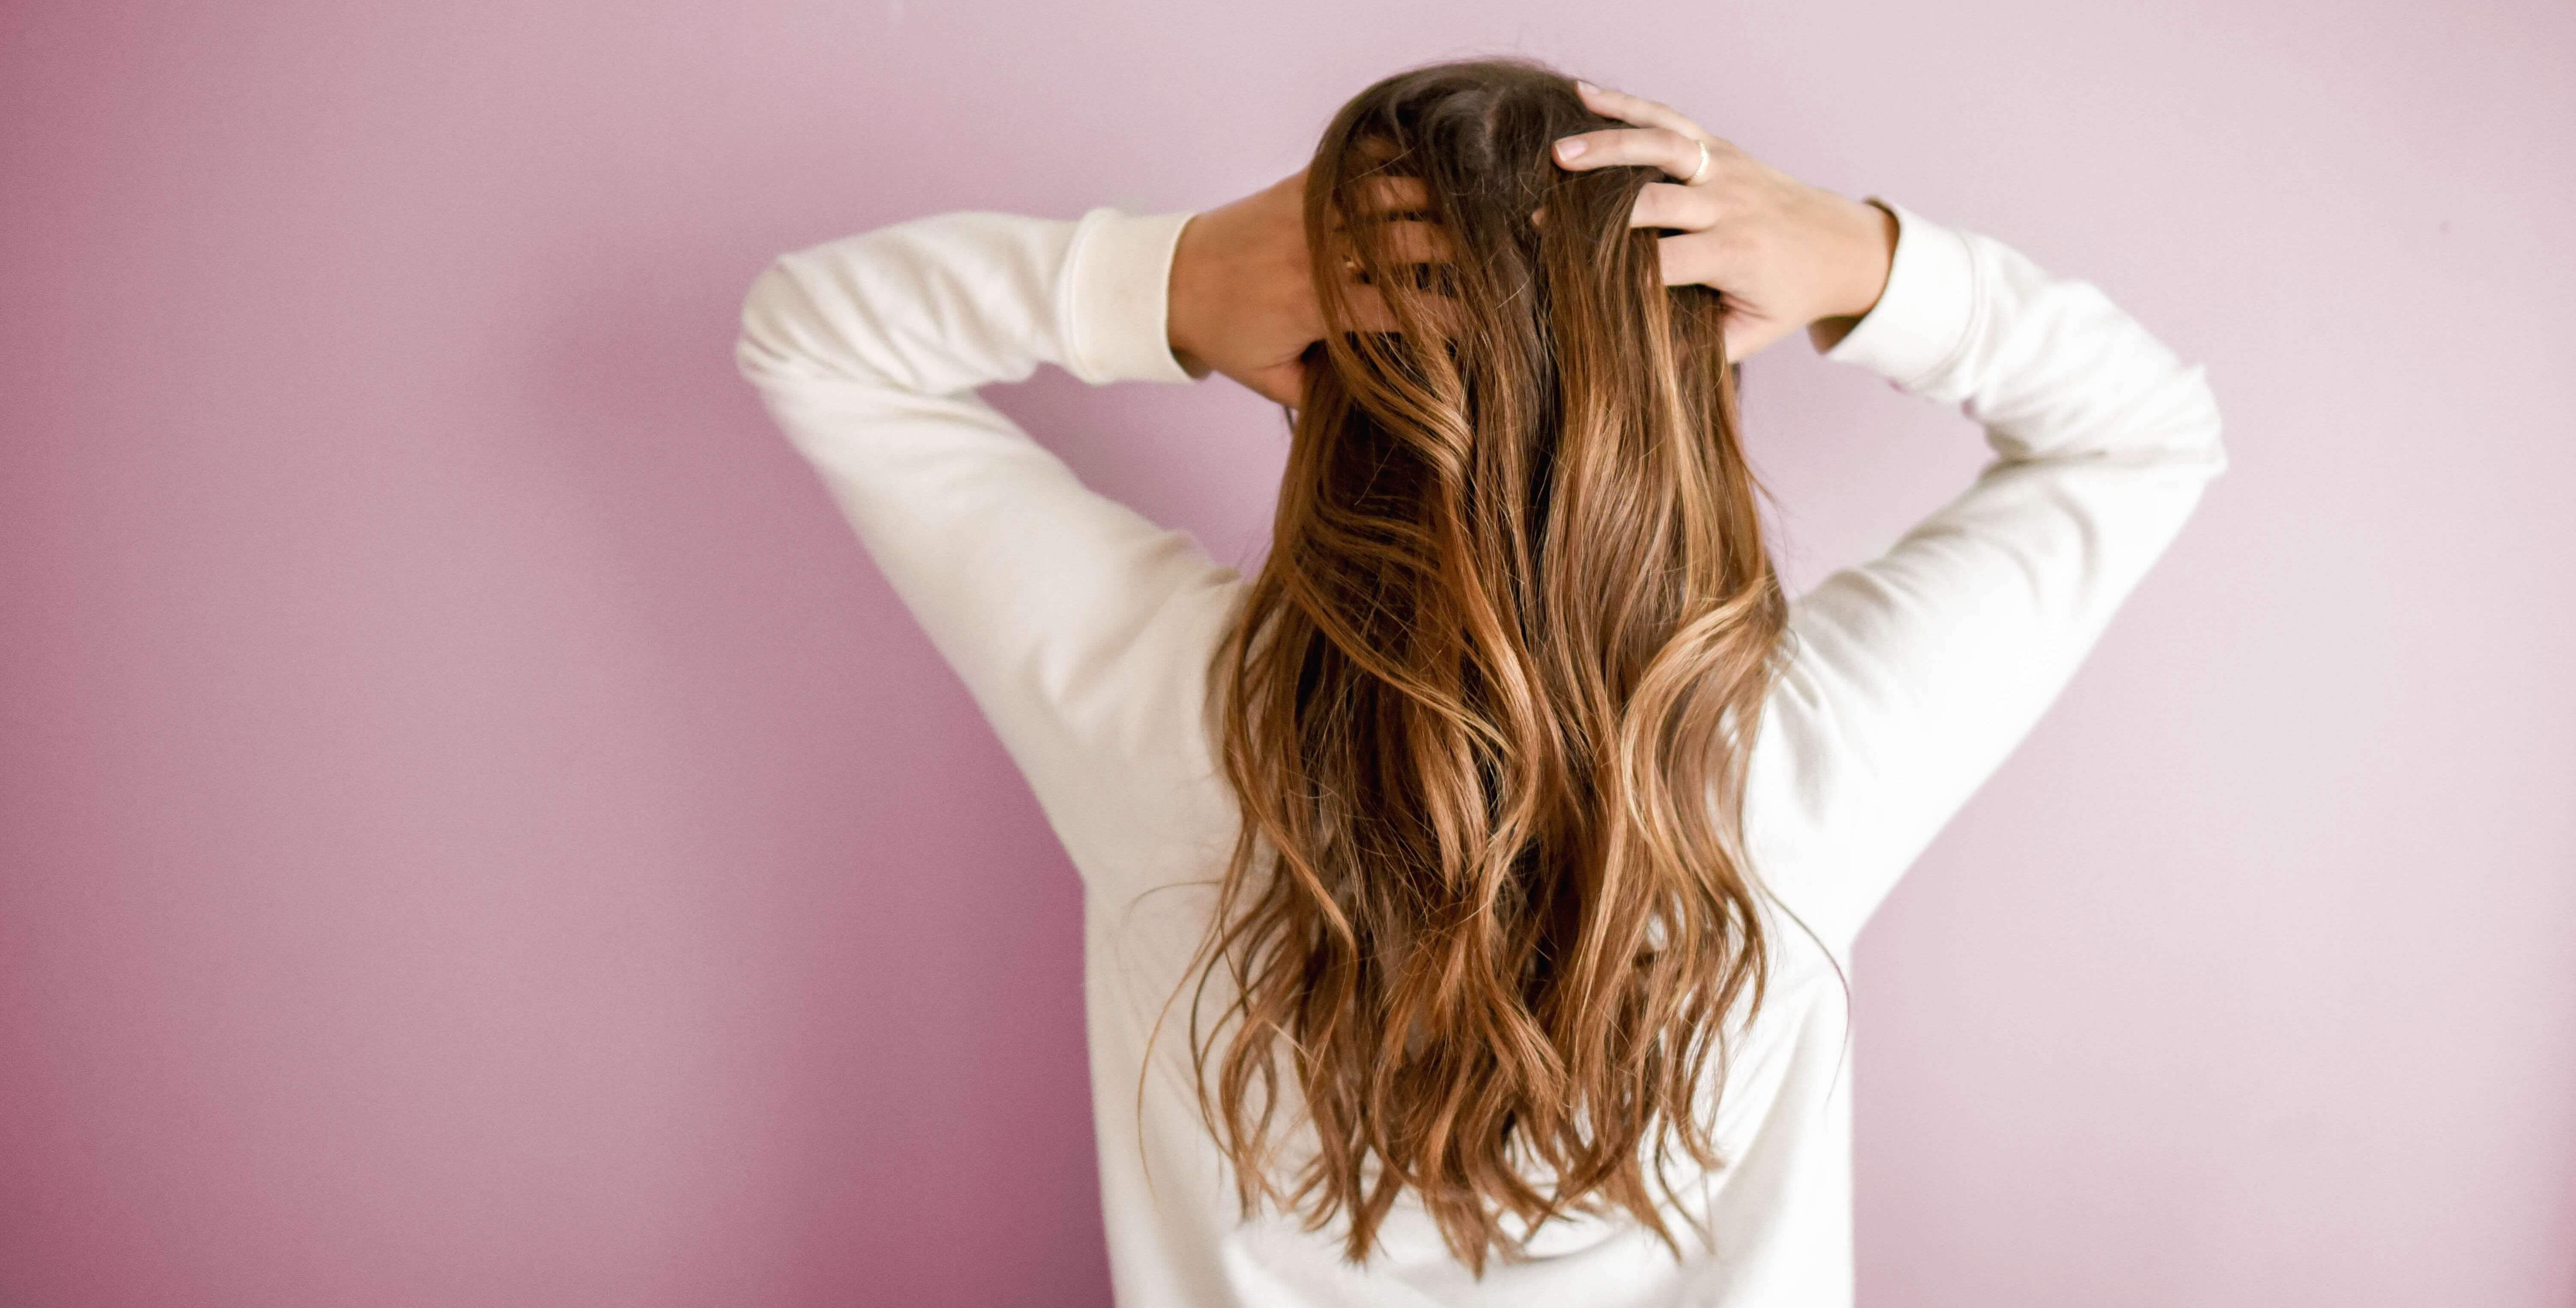 Hairextensions Groningen